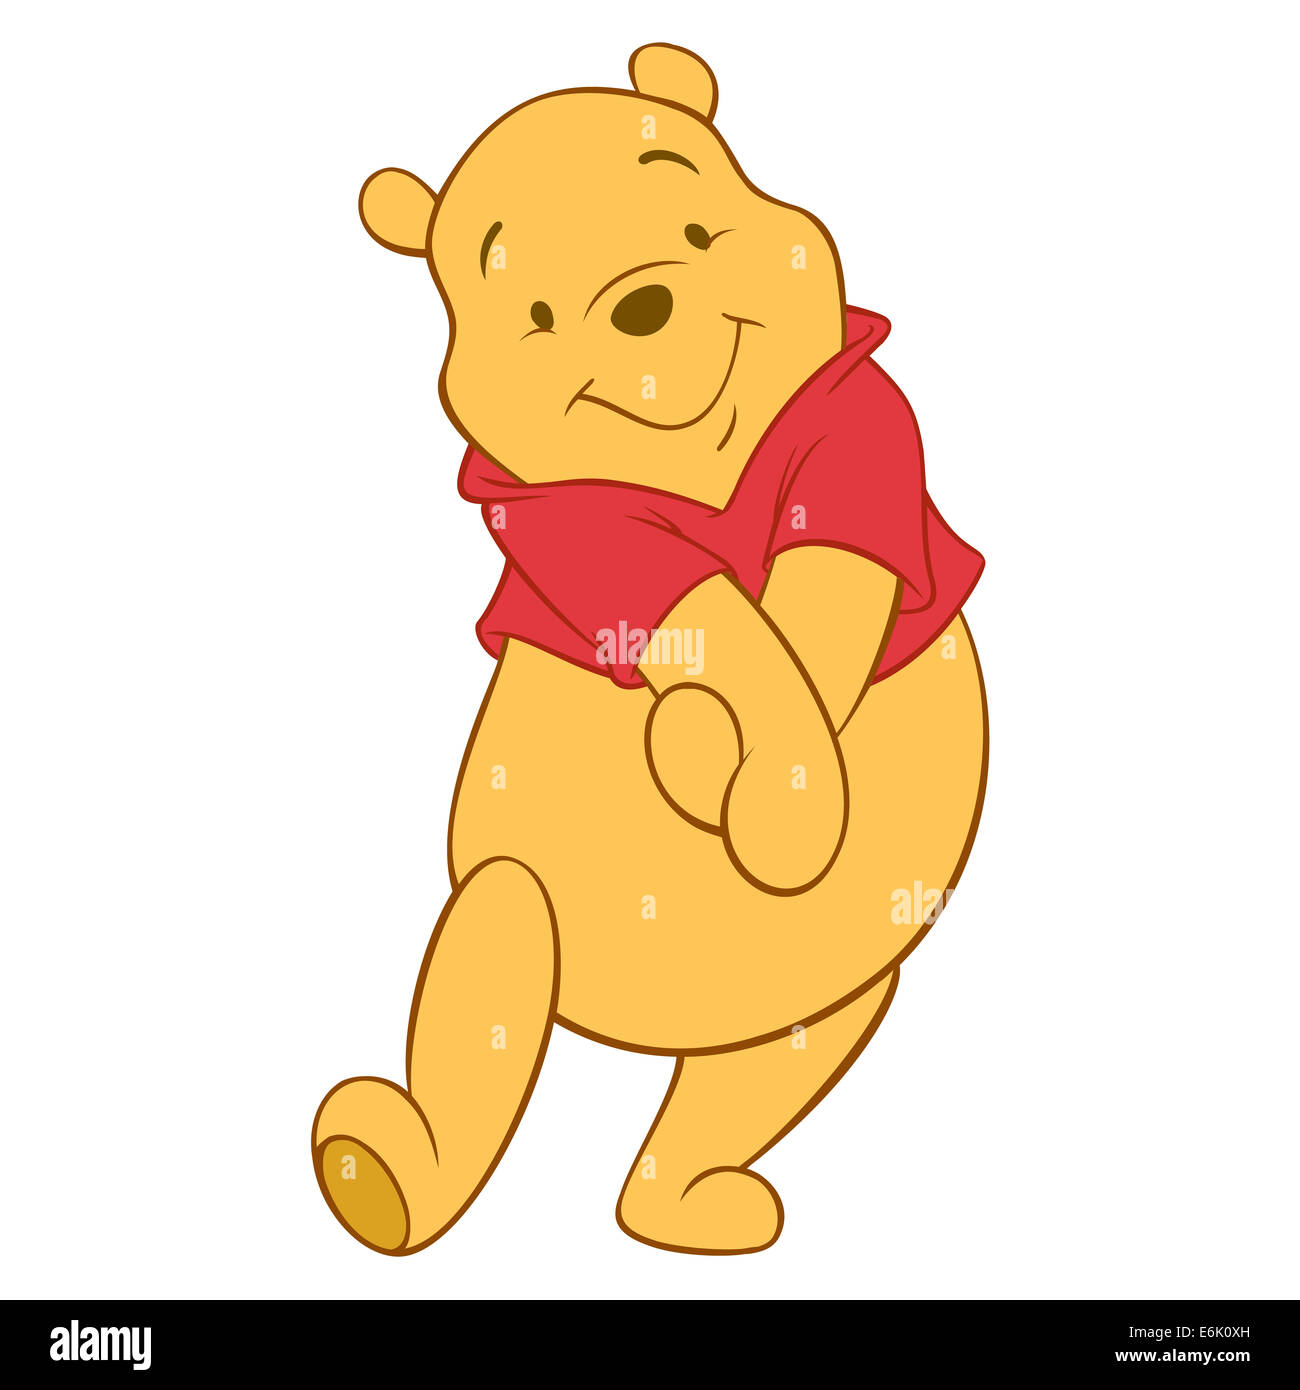 Winnie the pooh - Stock Image